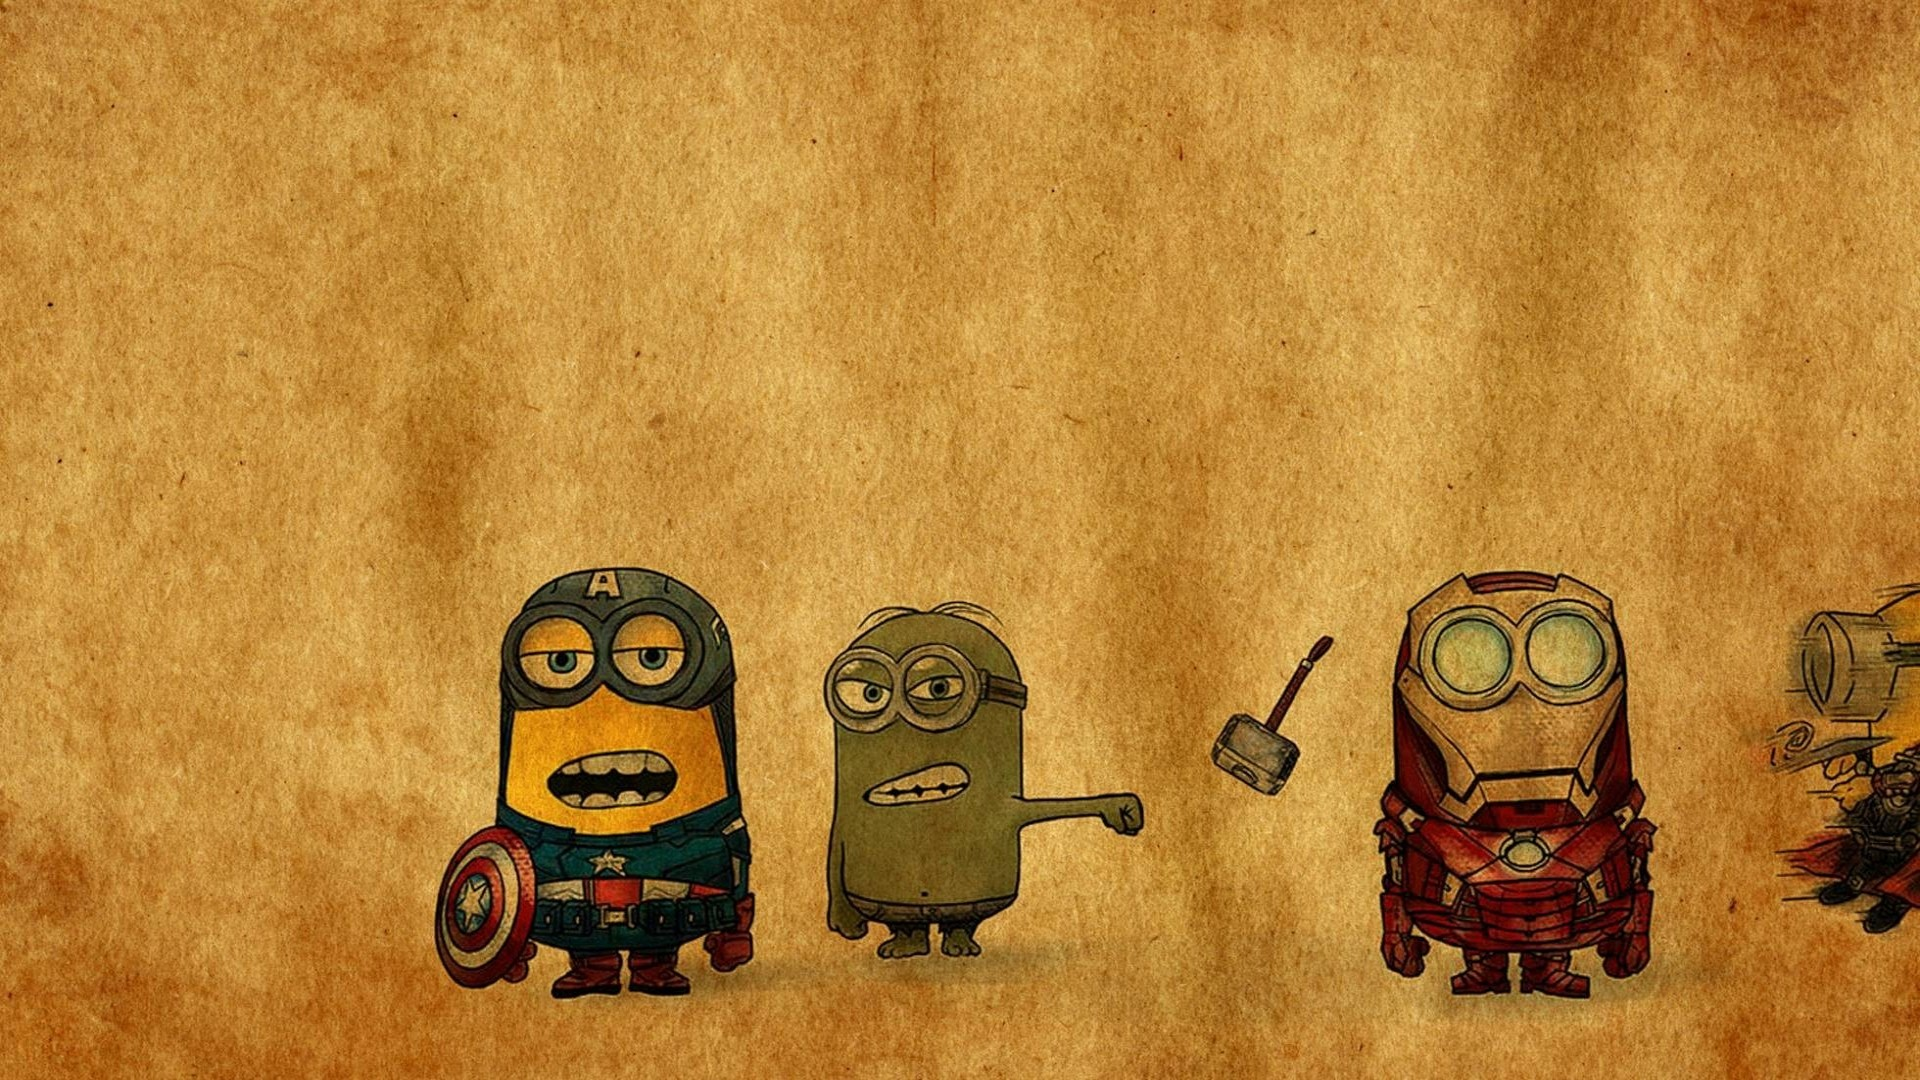 Res: 1920x1080, Funny Minion Wallpapers HD Free Download.